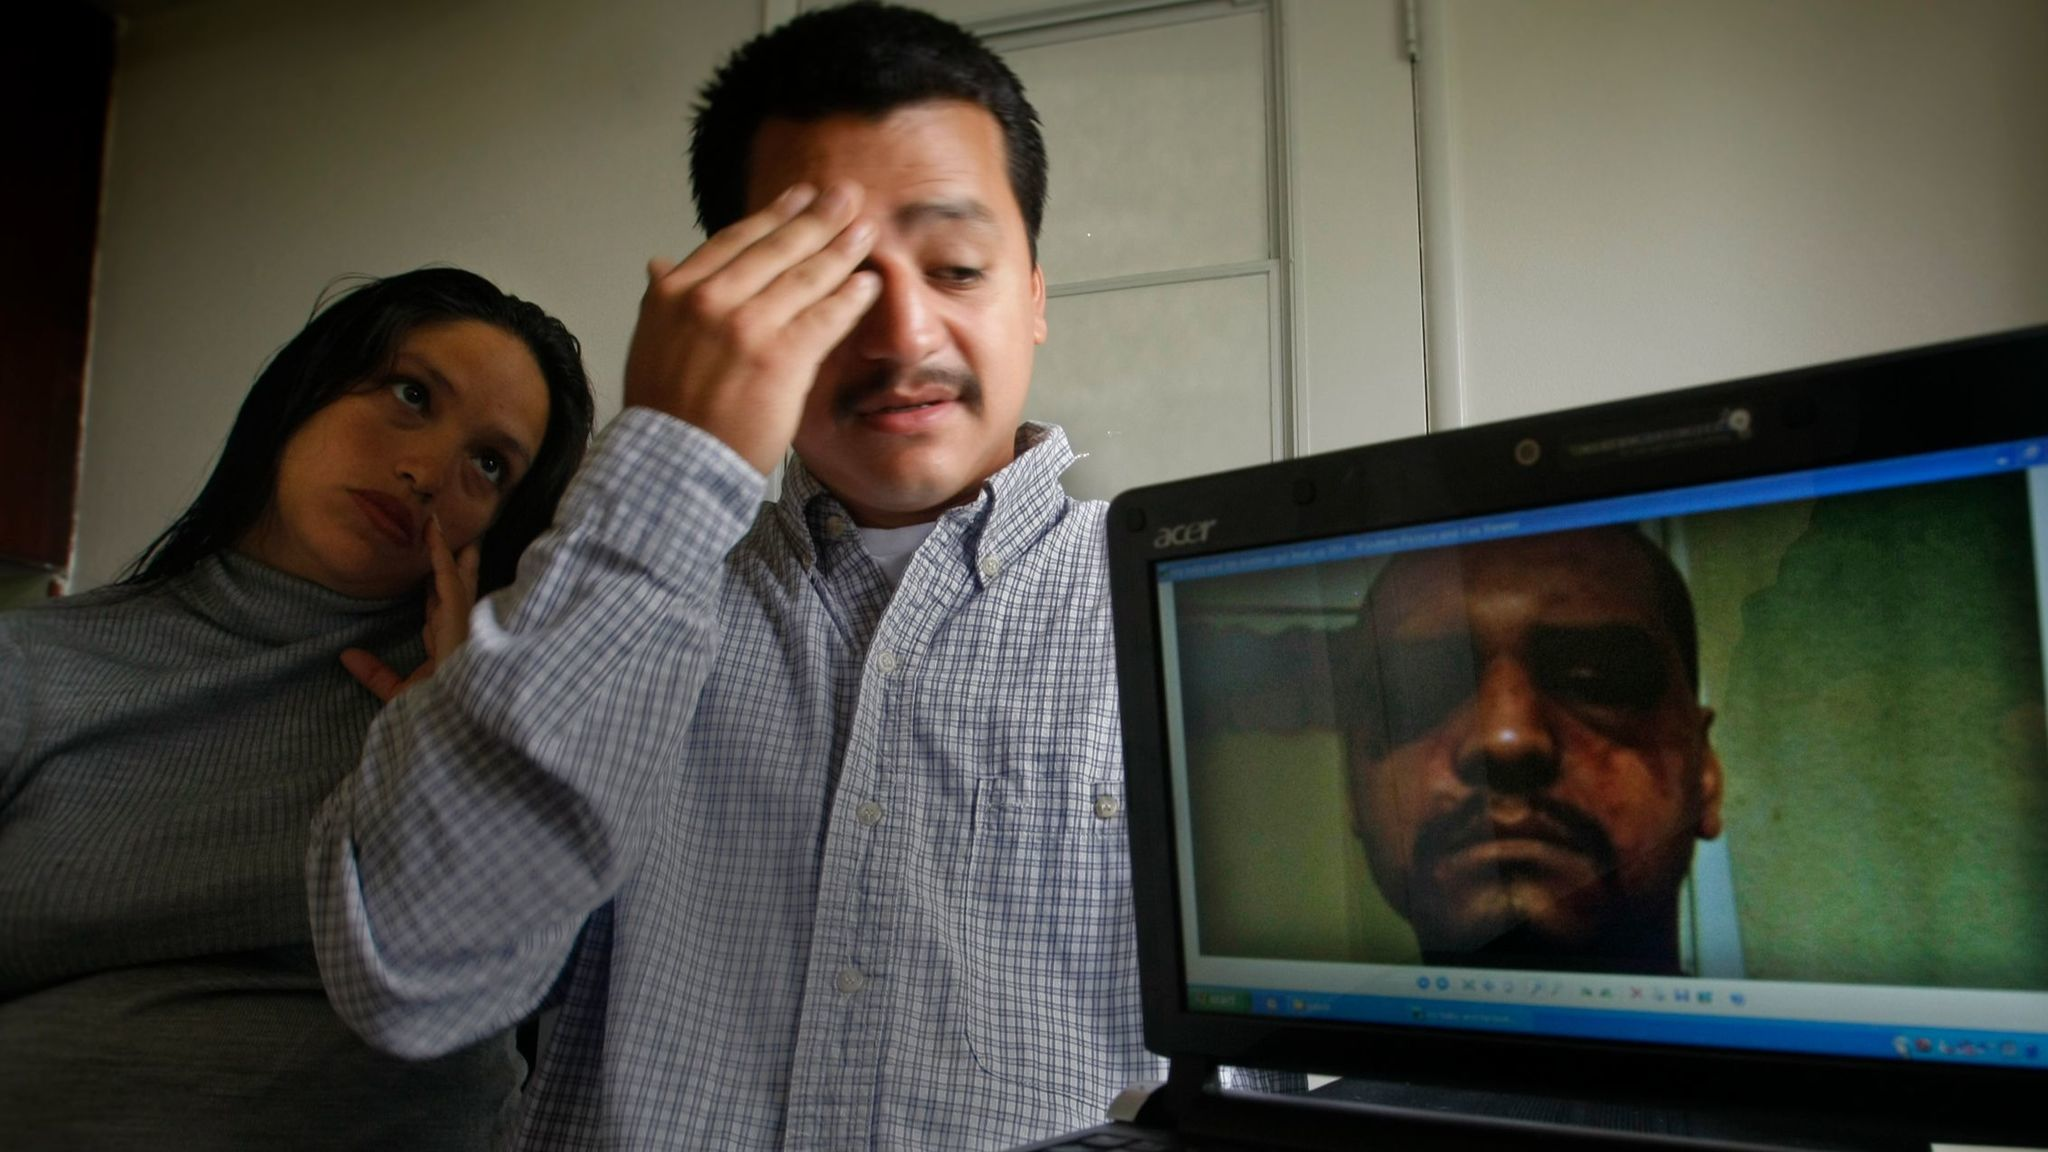 Gabriel Carrillo and his wife, Grace Martinez, with a photo she took of him after he was beaten in 2011 by Los Angeles County sheriff's deputies while visiting his brother, an inmate, at the Men's Central Jail. Federal prosecutors won convictions against the deputies.